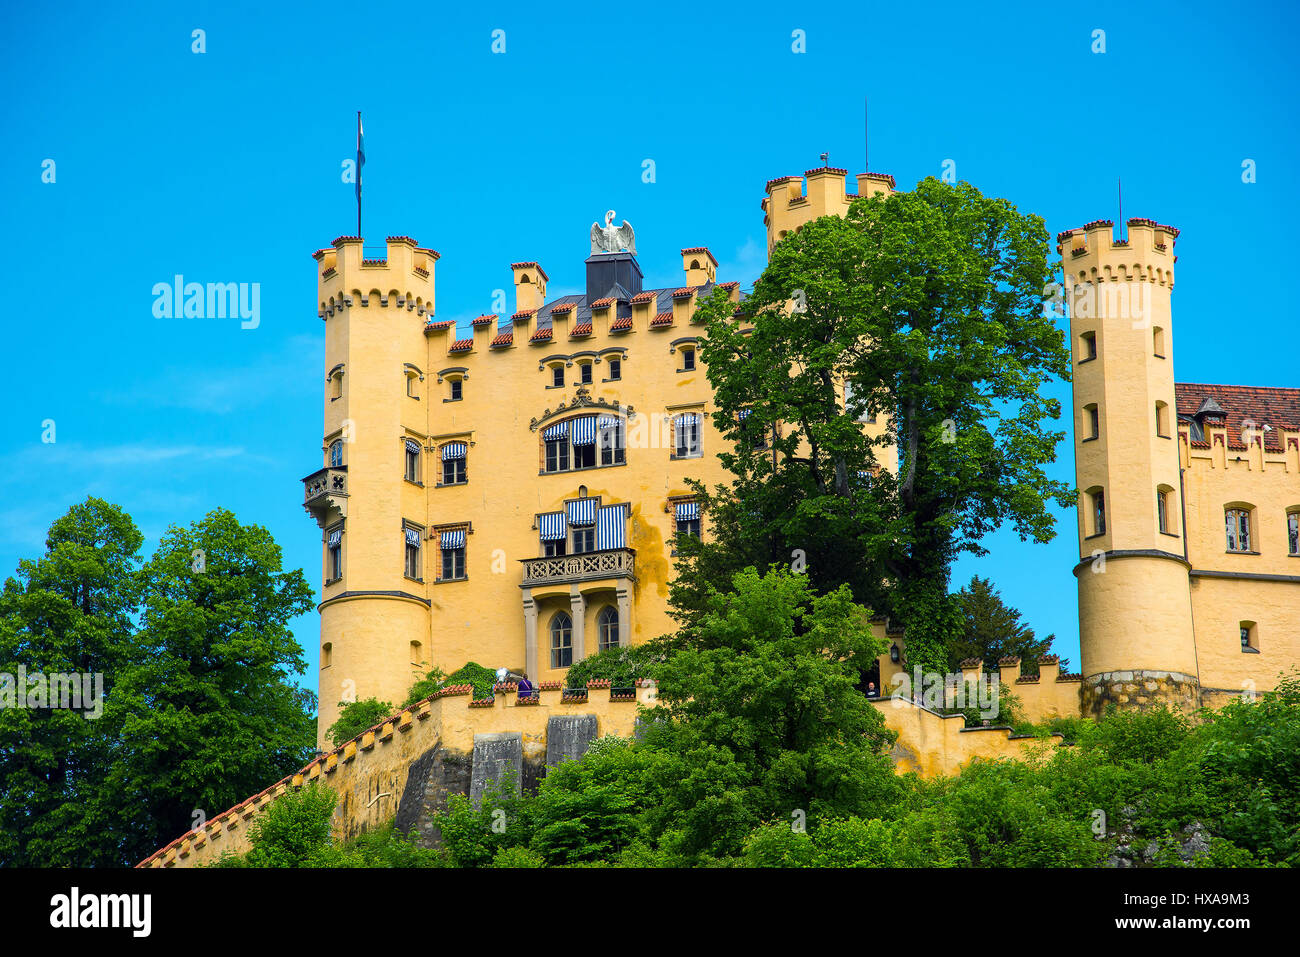 Hohenschwangau Castle or Schloss Hohenschwangau is a 19th-century palace in southern Germany. It was the childhood Stock Photo